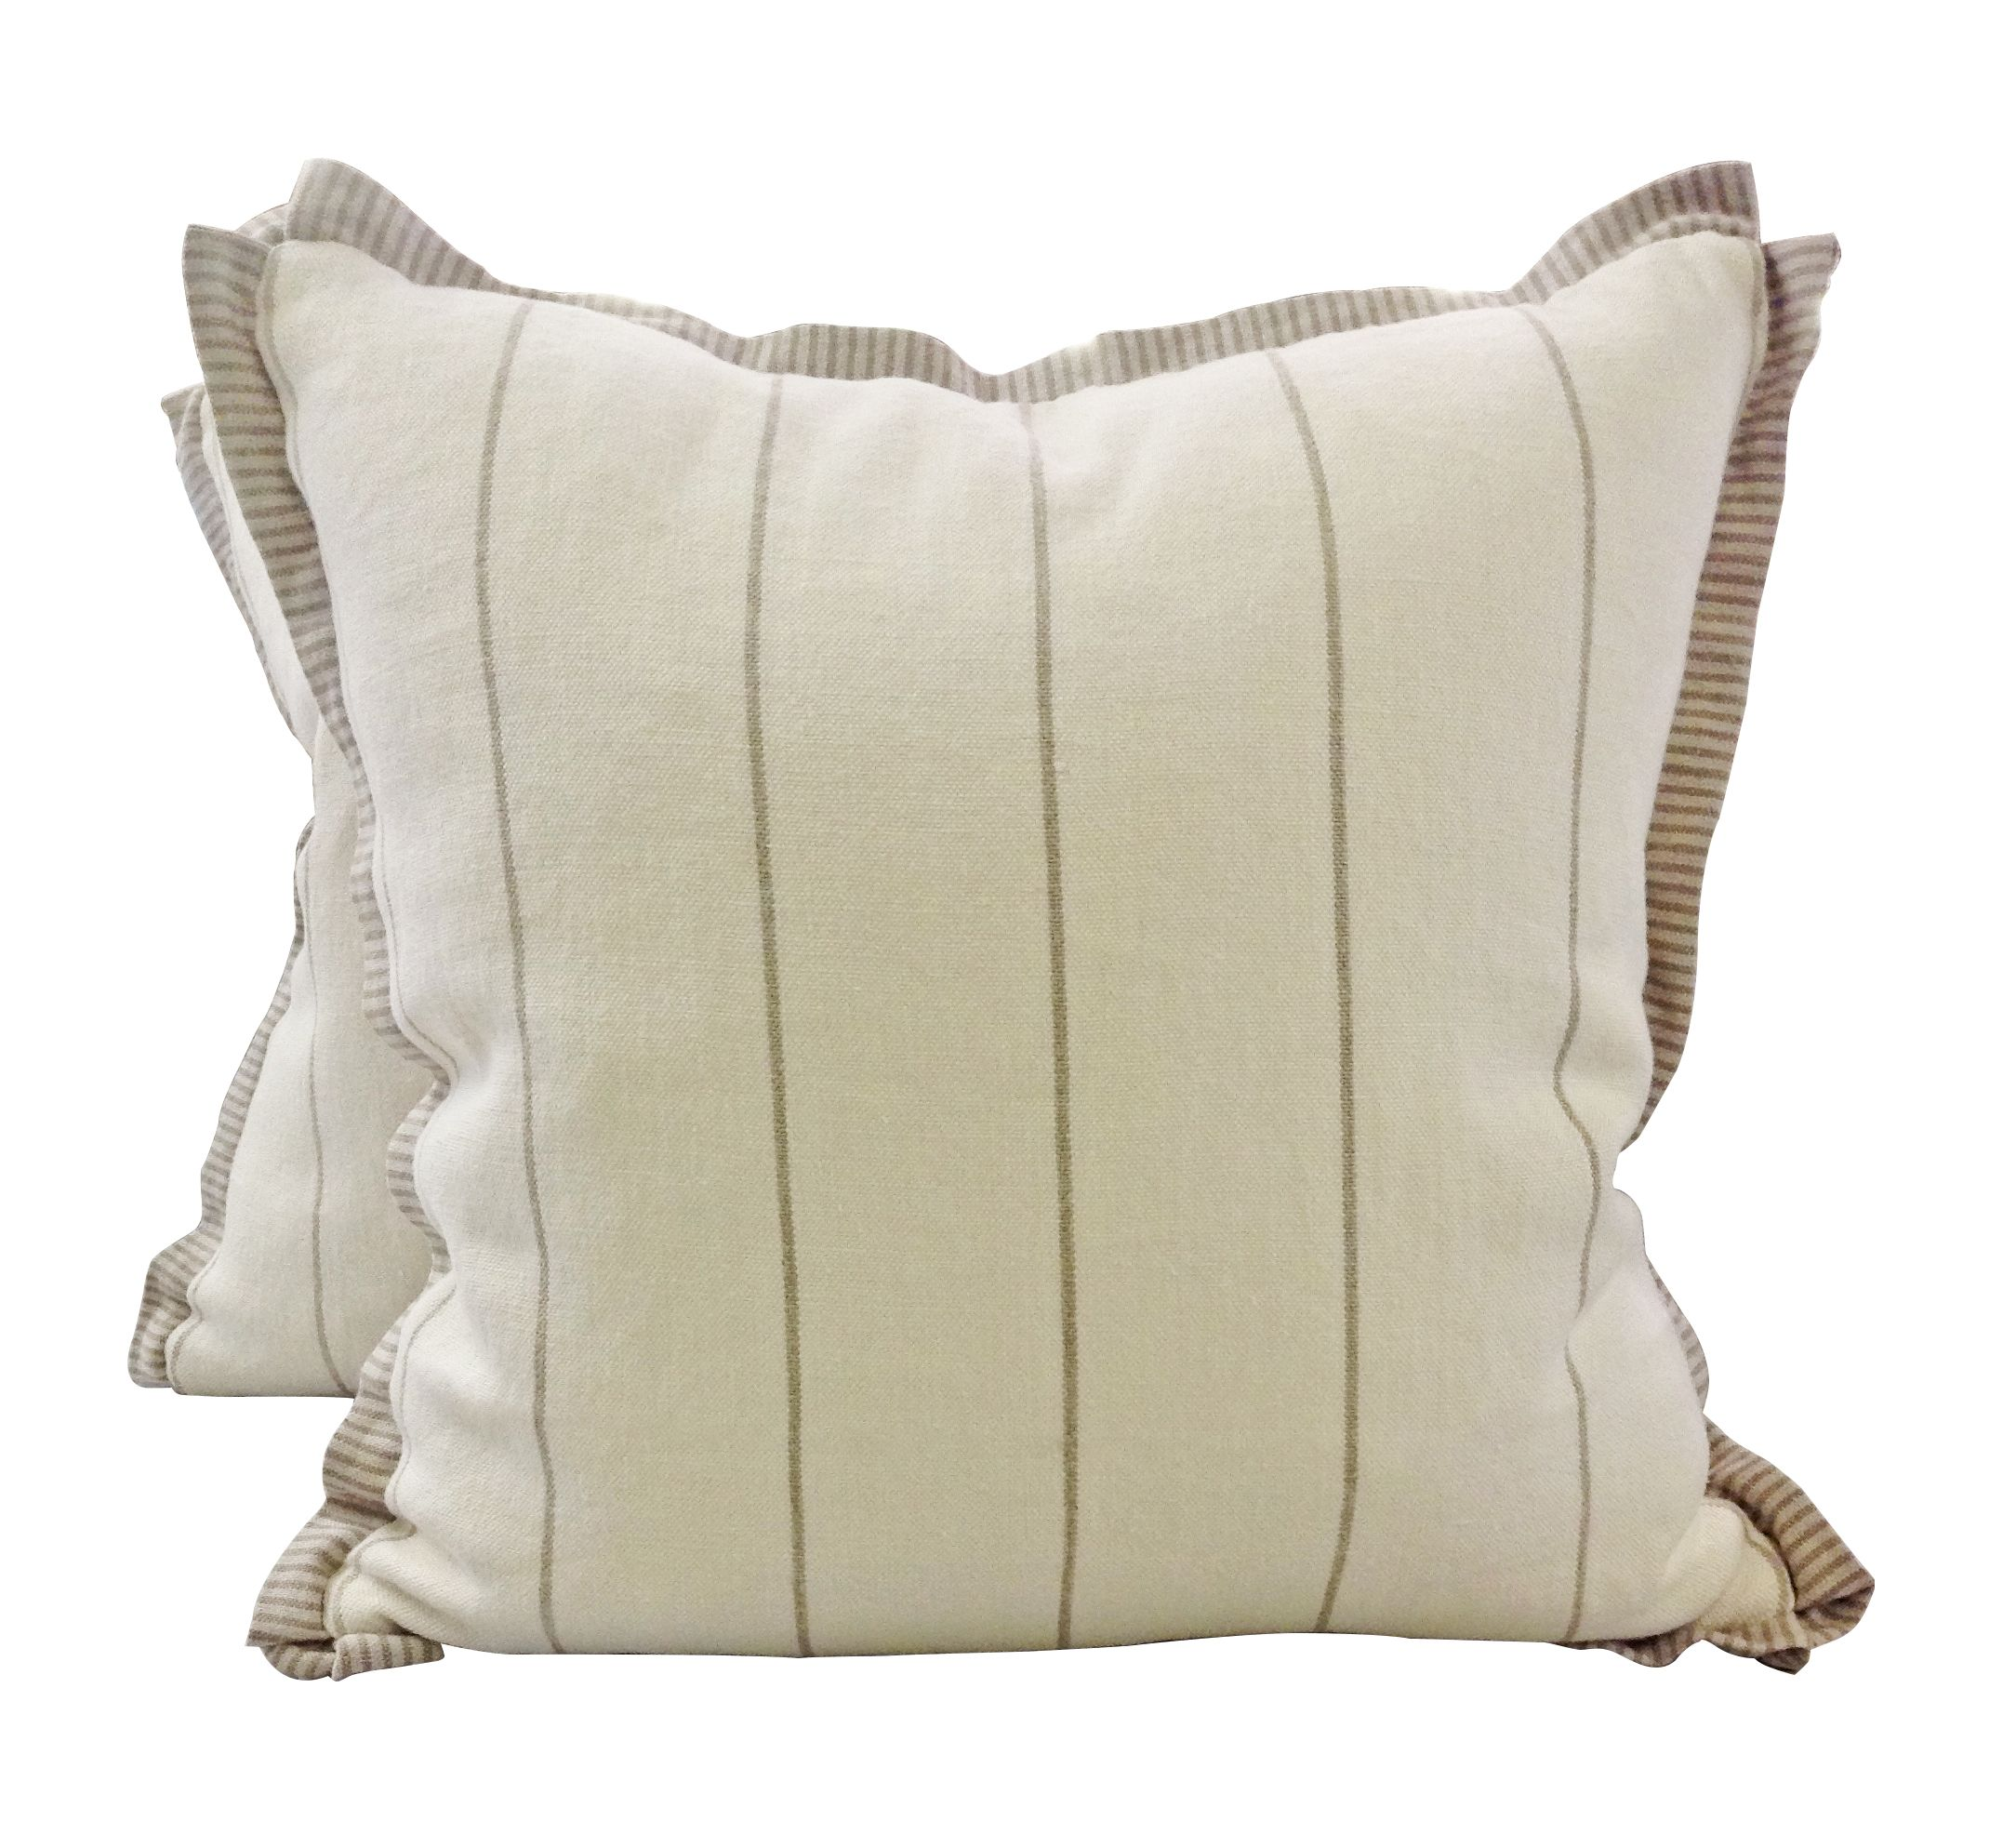 We Love This Stripe On Stripe Pillow The Main Fabric Is Westport - Soft decorative pillows